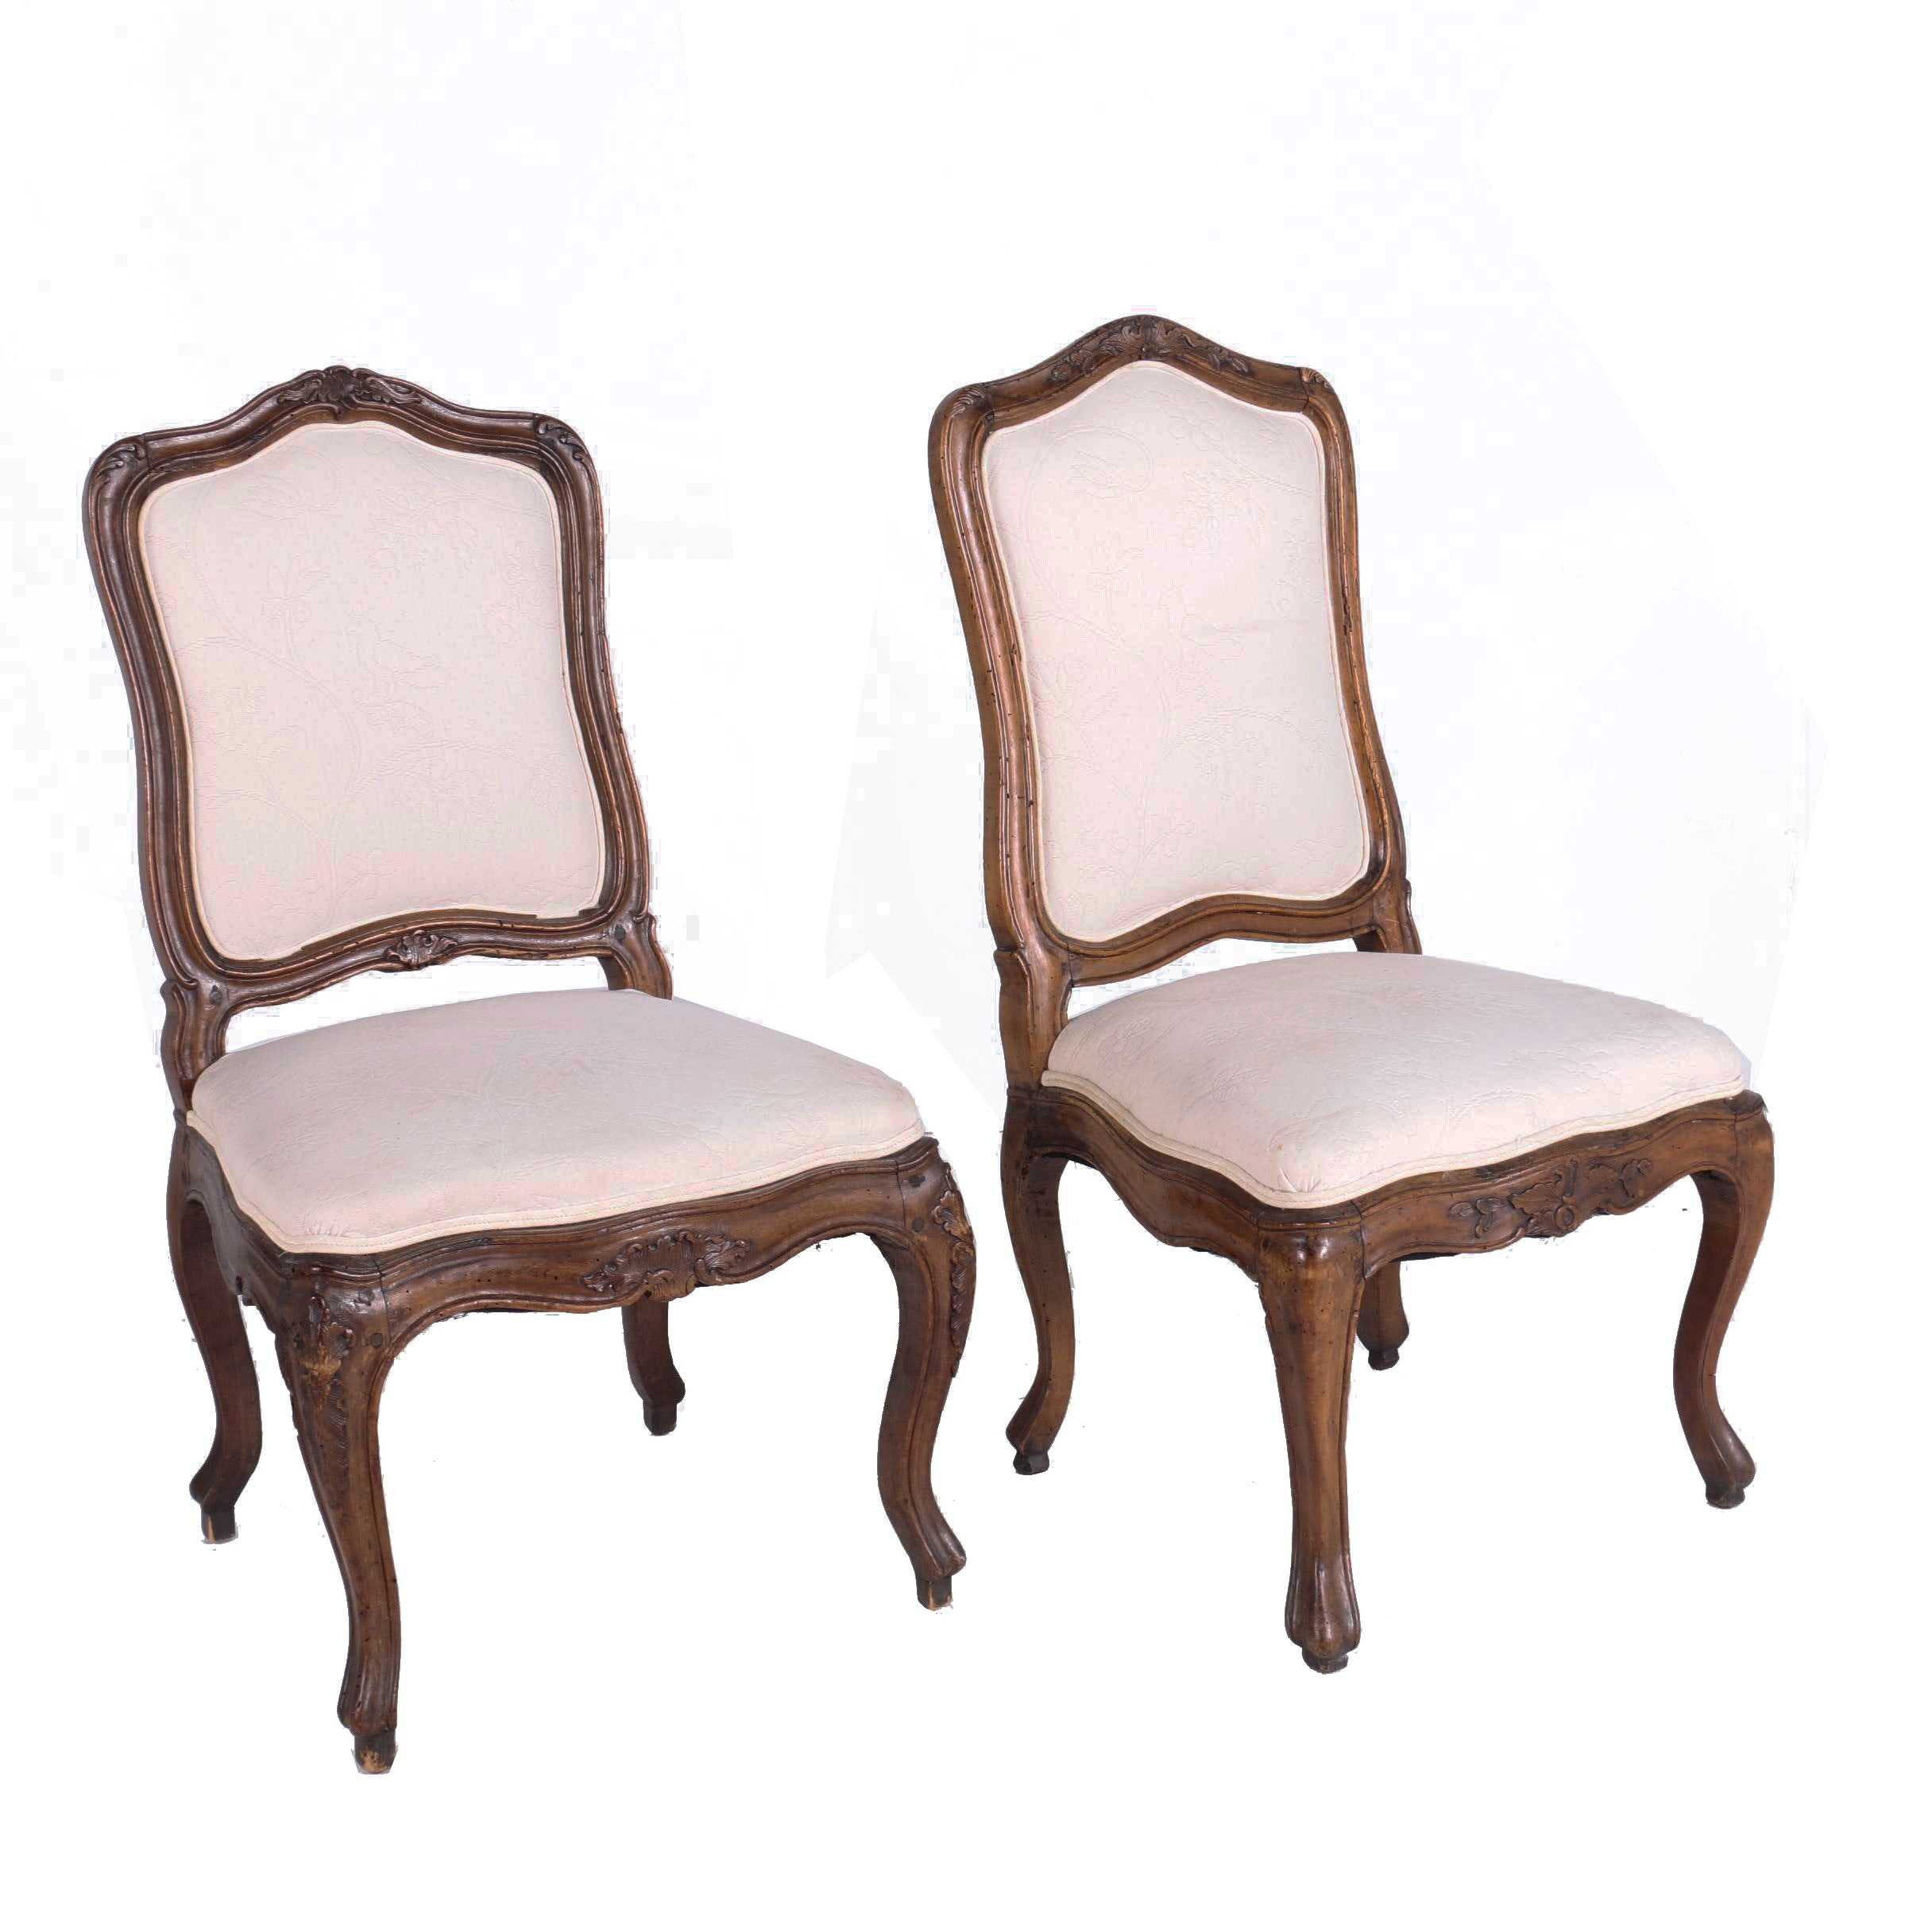 Two Louis XV Style Walnut Side Chairs, 19th Century